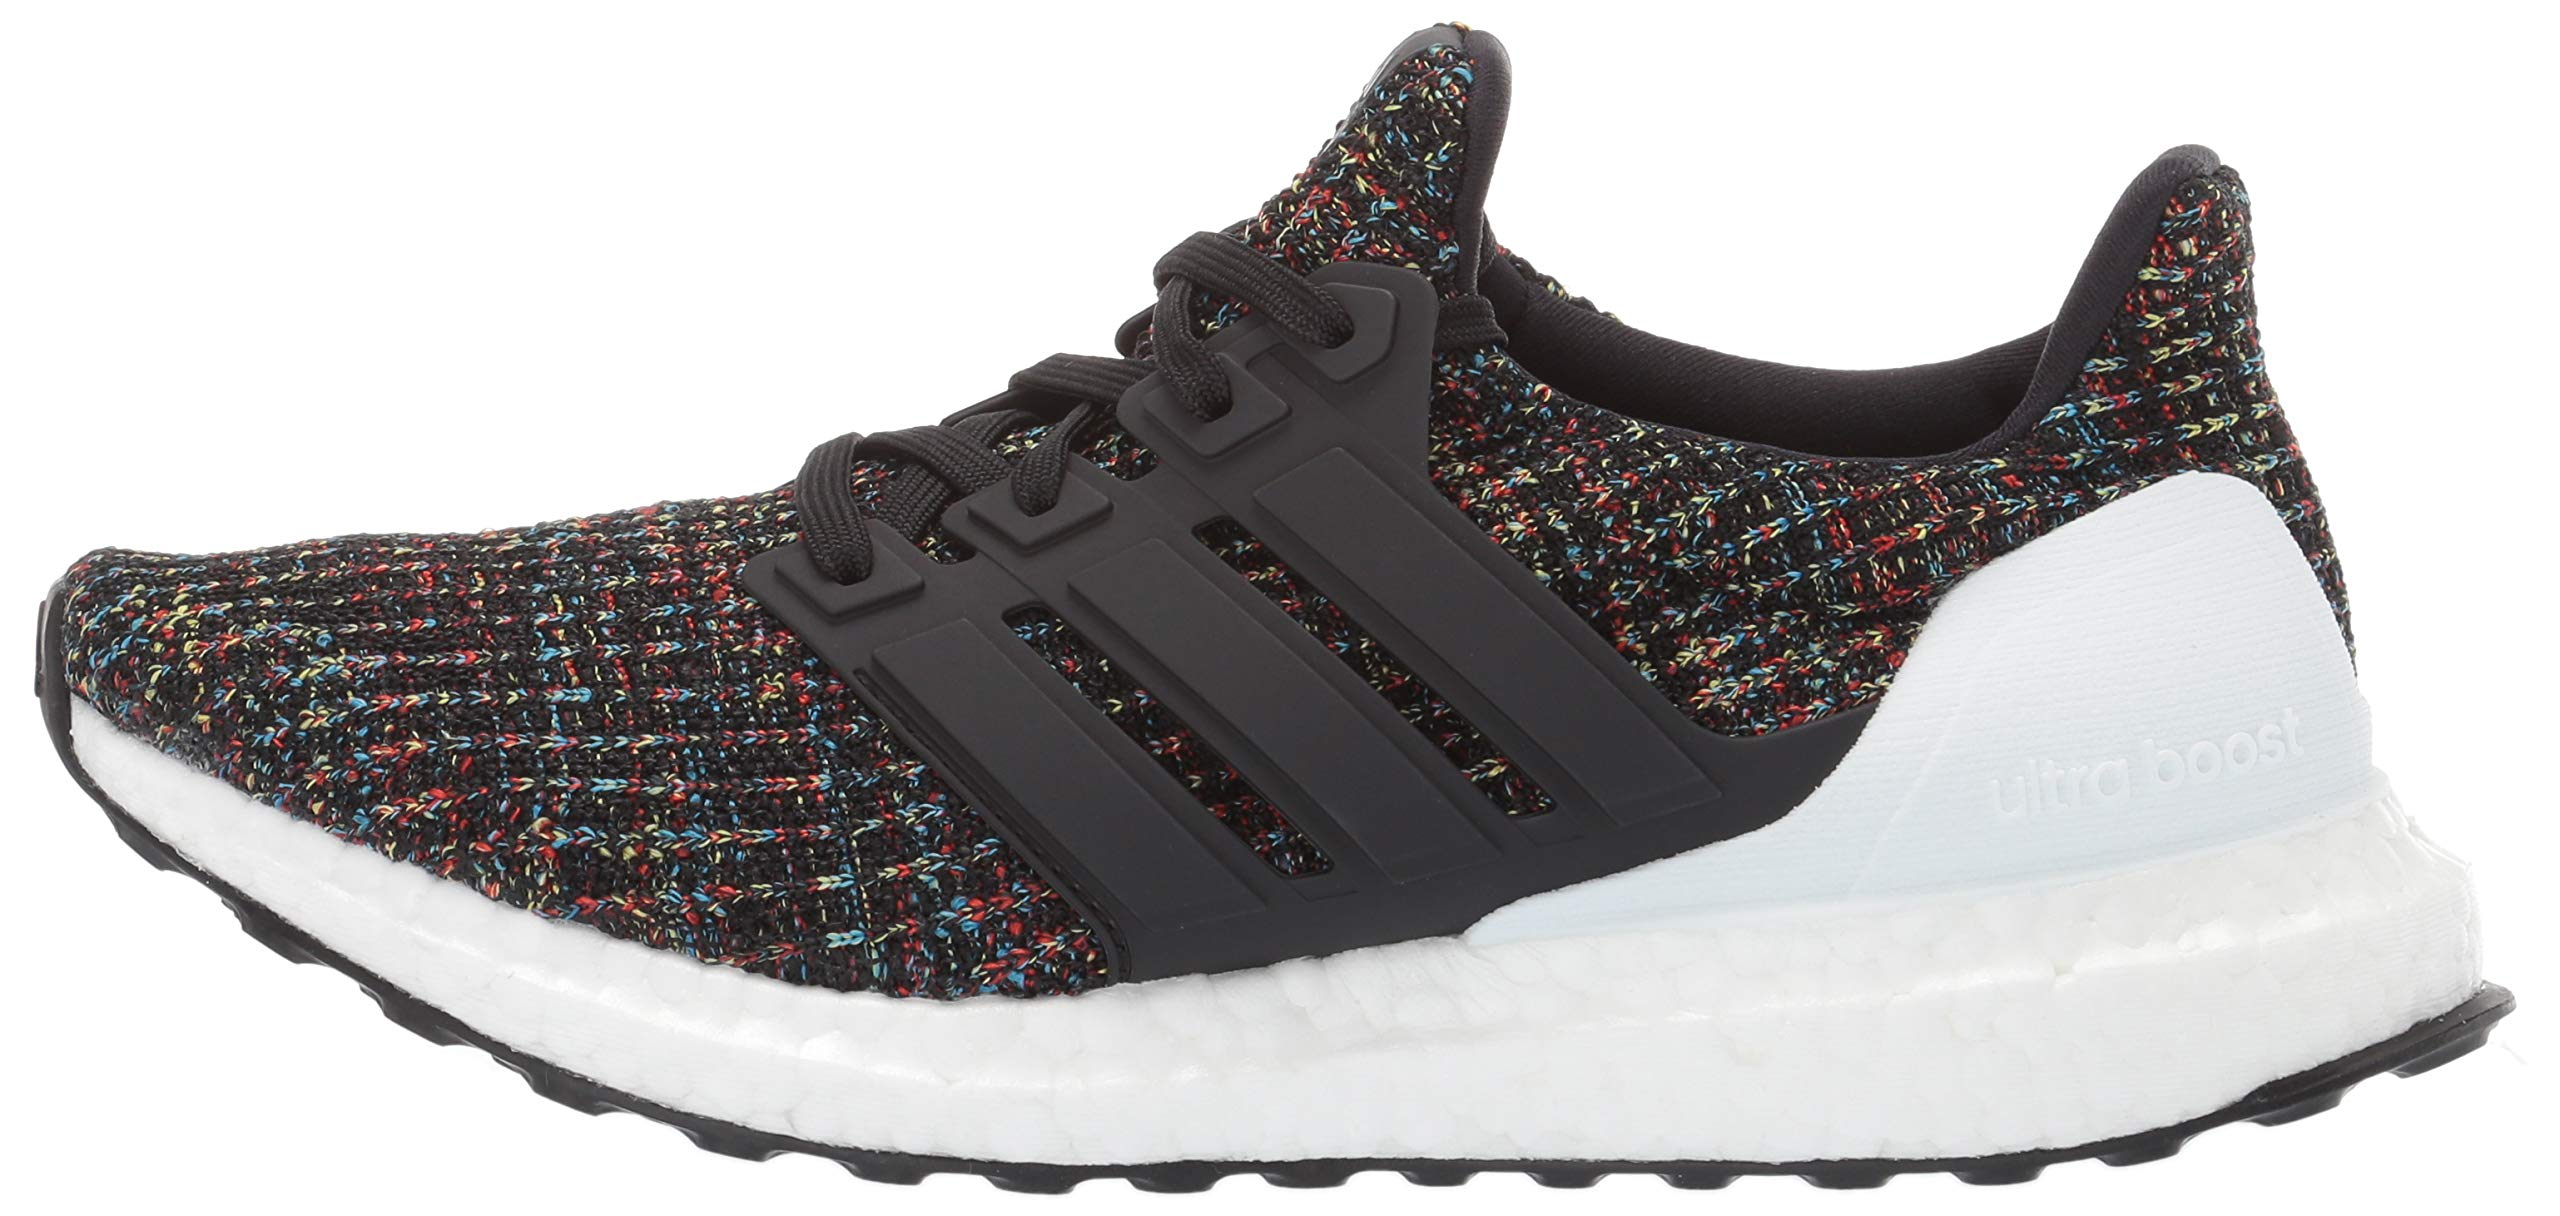 adidas Unisex Ultraboost, Black/White/Active red, 4 M US Big Kid by adidas (Image #5)